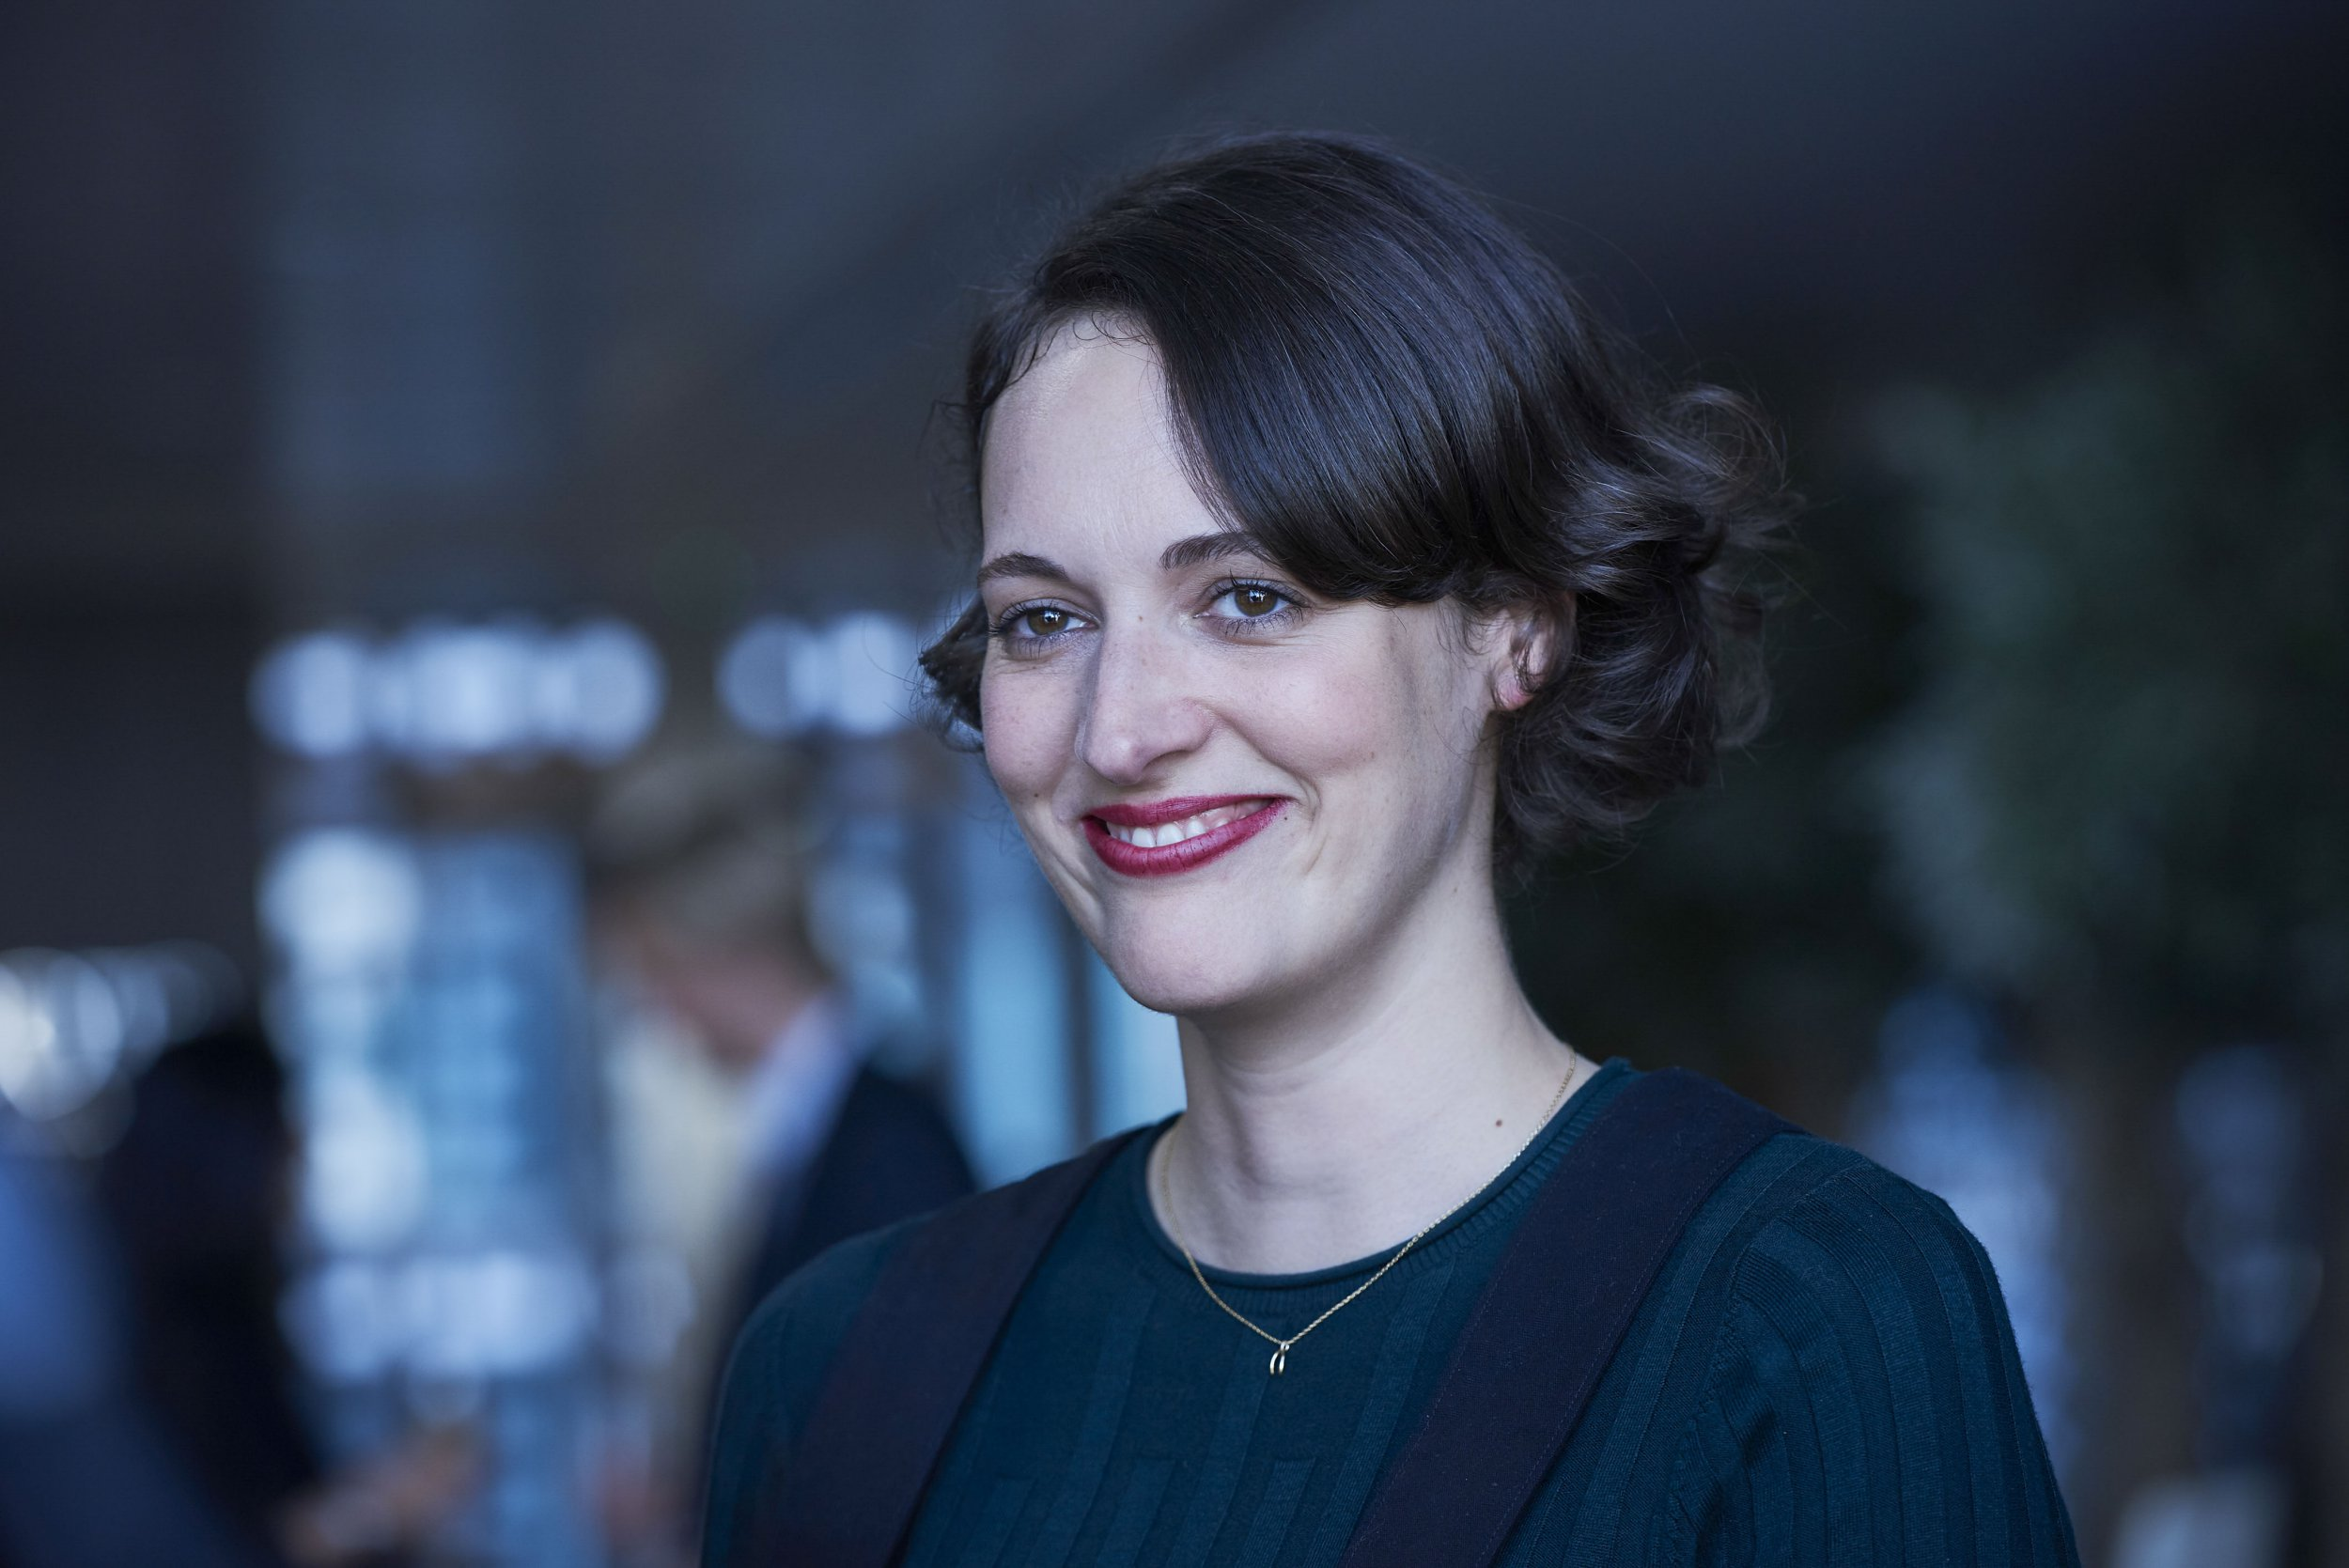 What TV shows has Fleabag's Phoebe Waller-Bridge written and starred in?